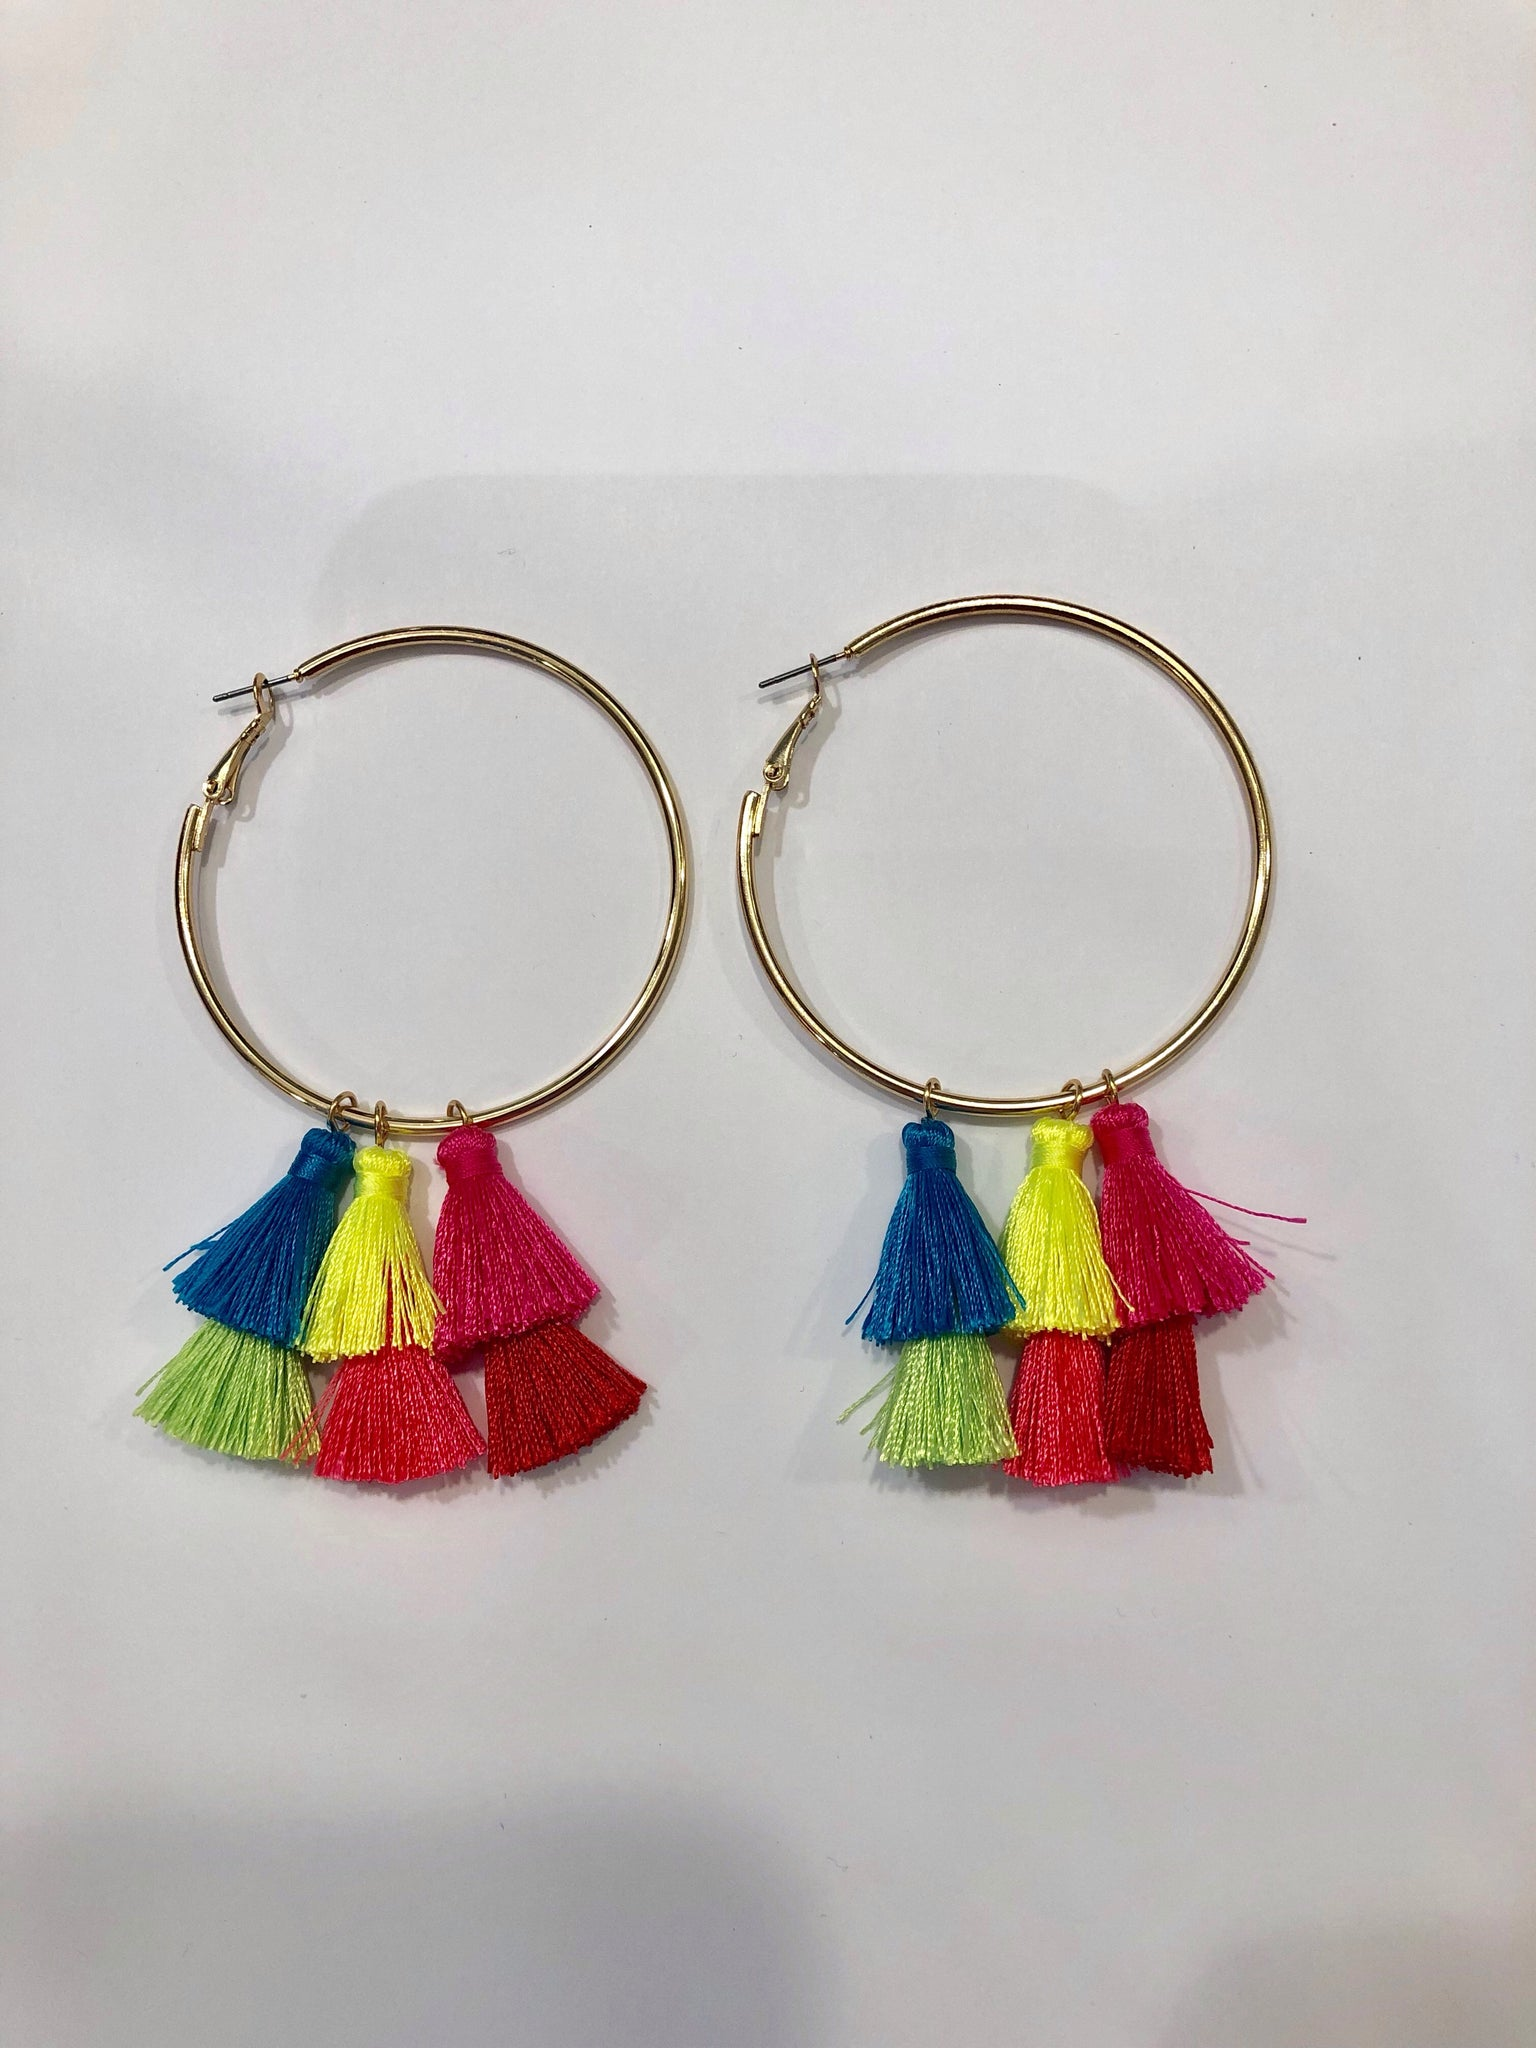 Neon Pink/Yellow Pom Pom Hoops